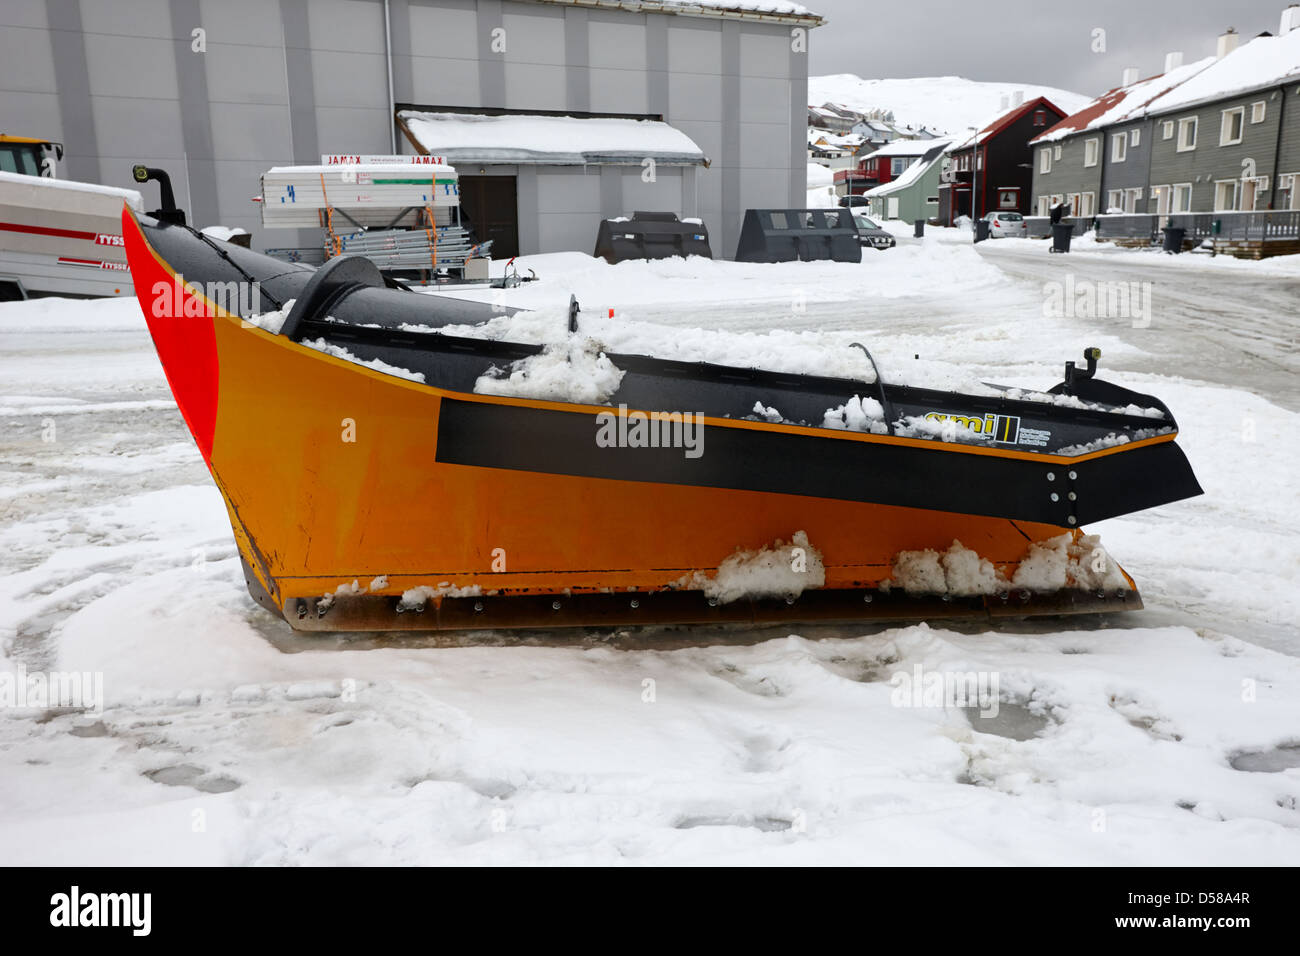 snowplough attachment for adapting trucks to road clearing vehicles Honningsvag finnmark norway europe - Stock Image